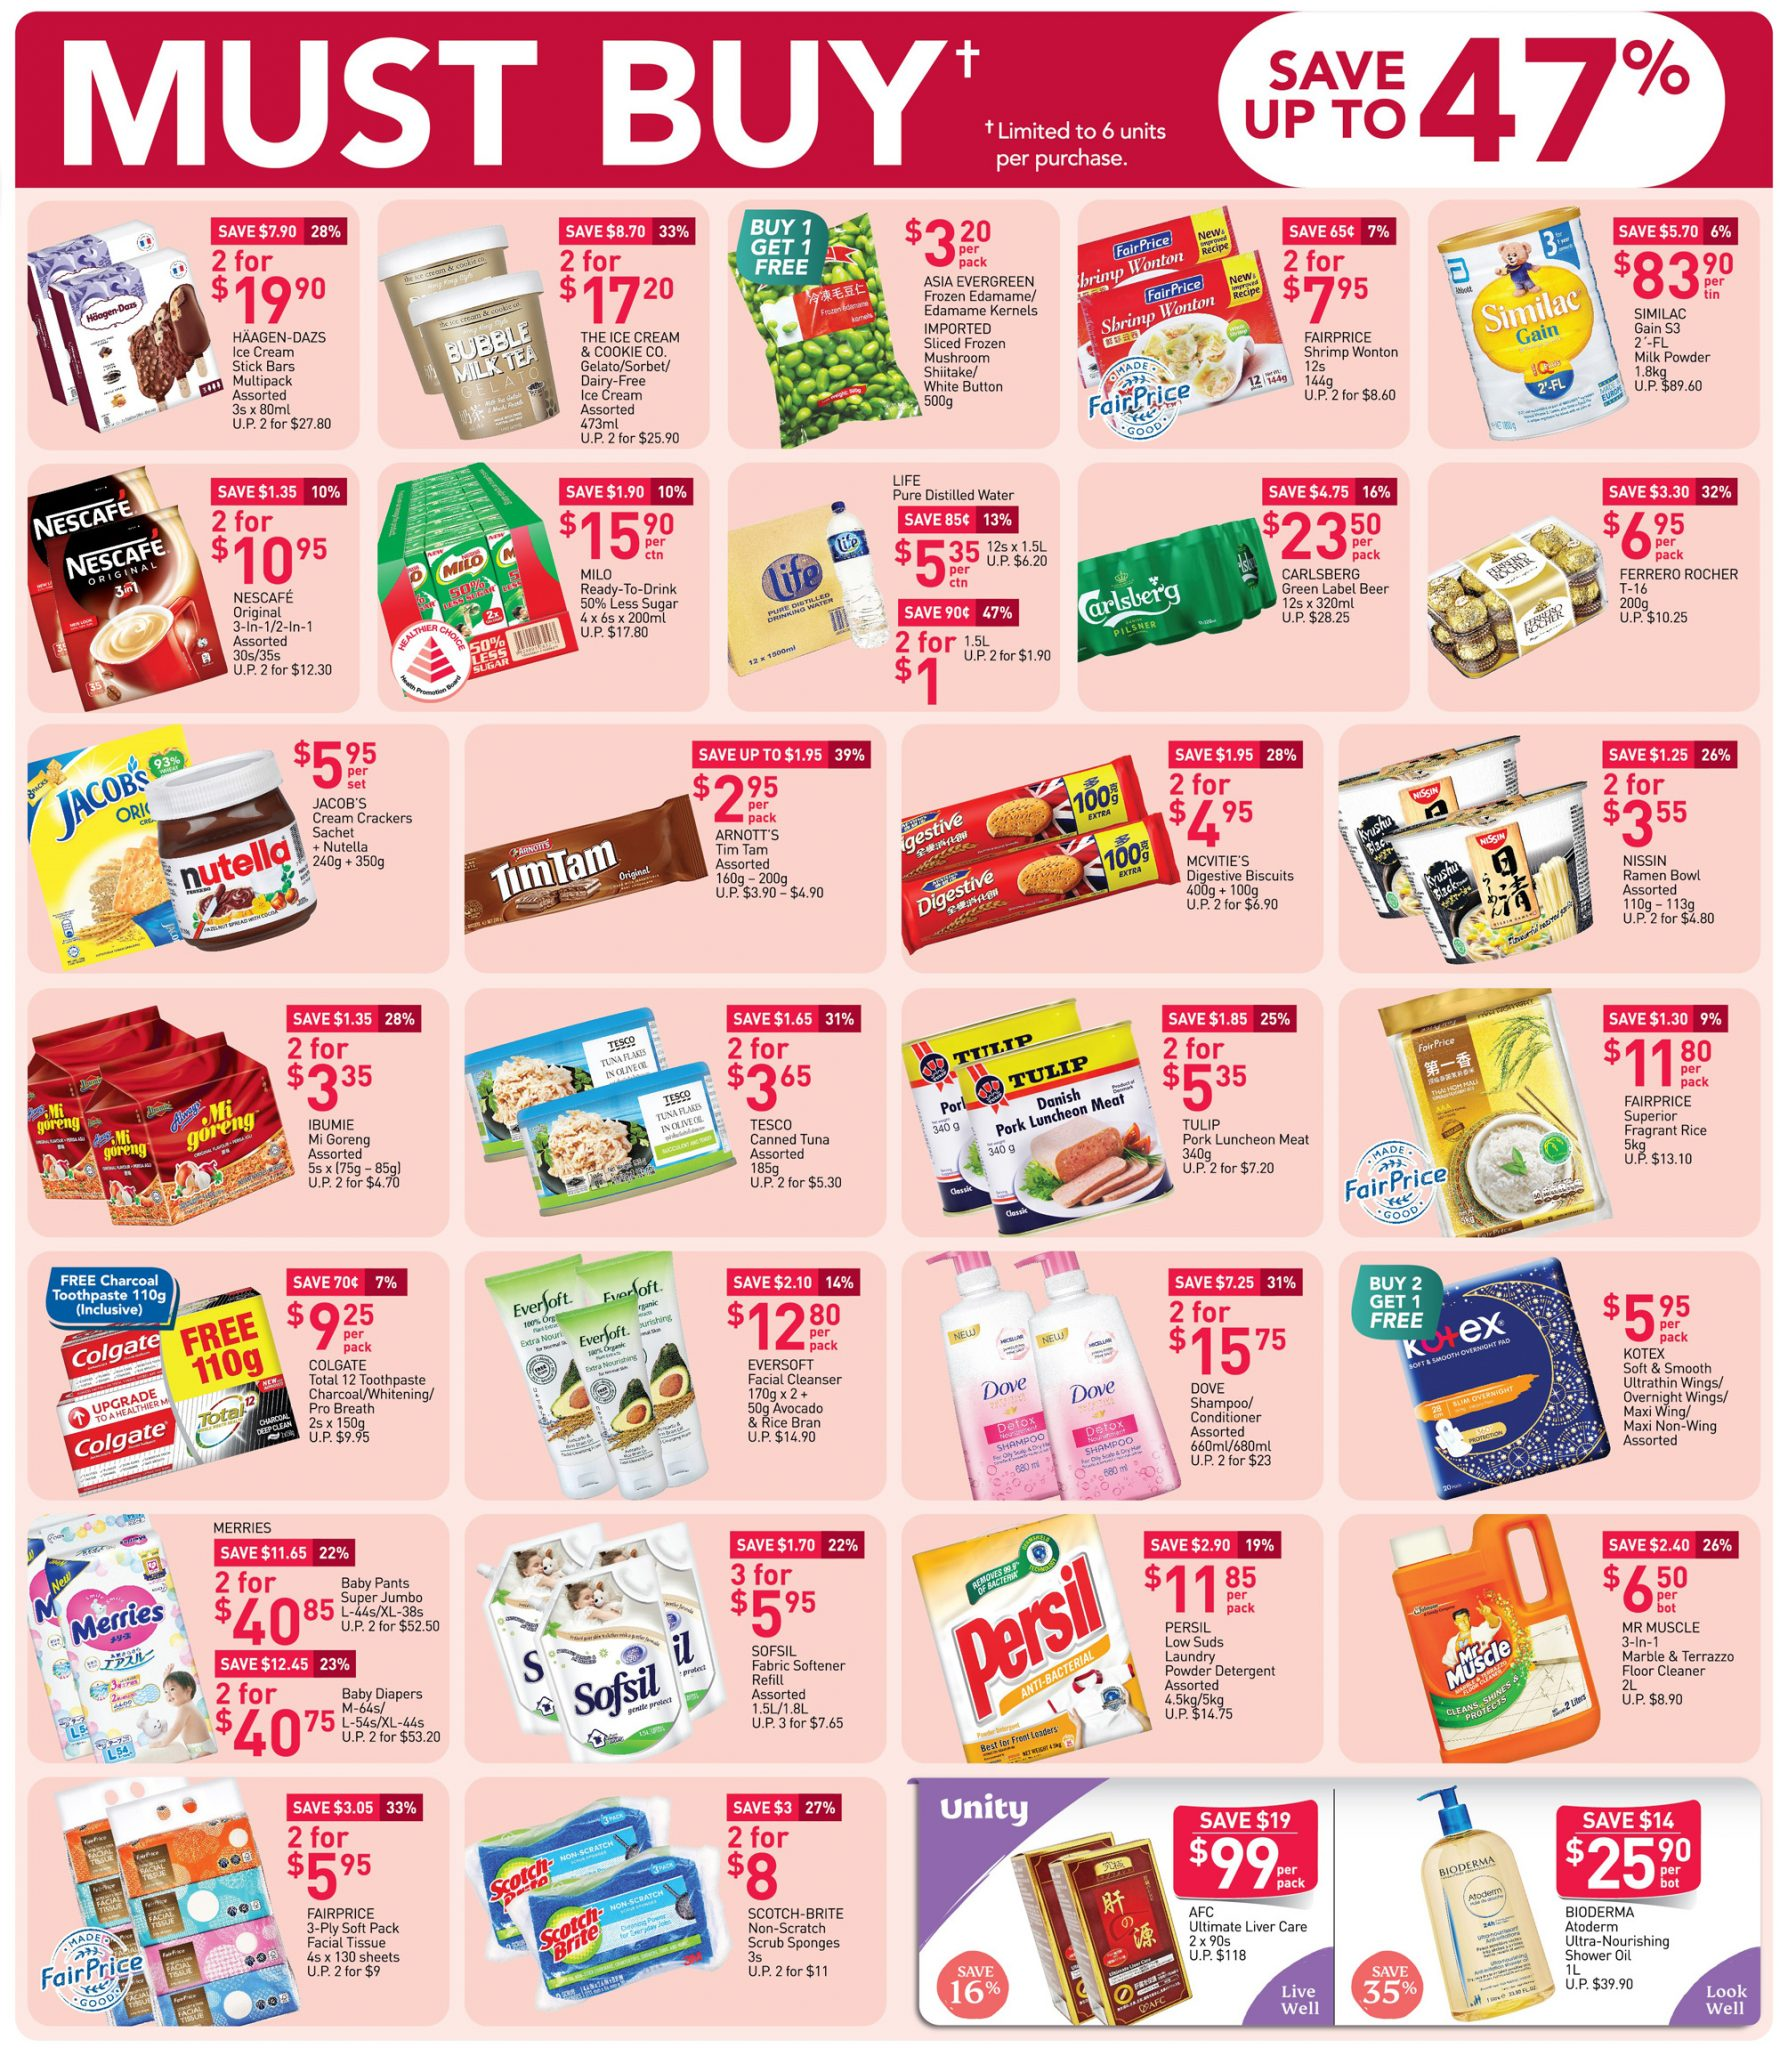 FairPrice must-buy items from now till 14 October 2020